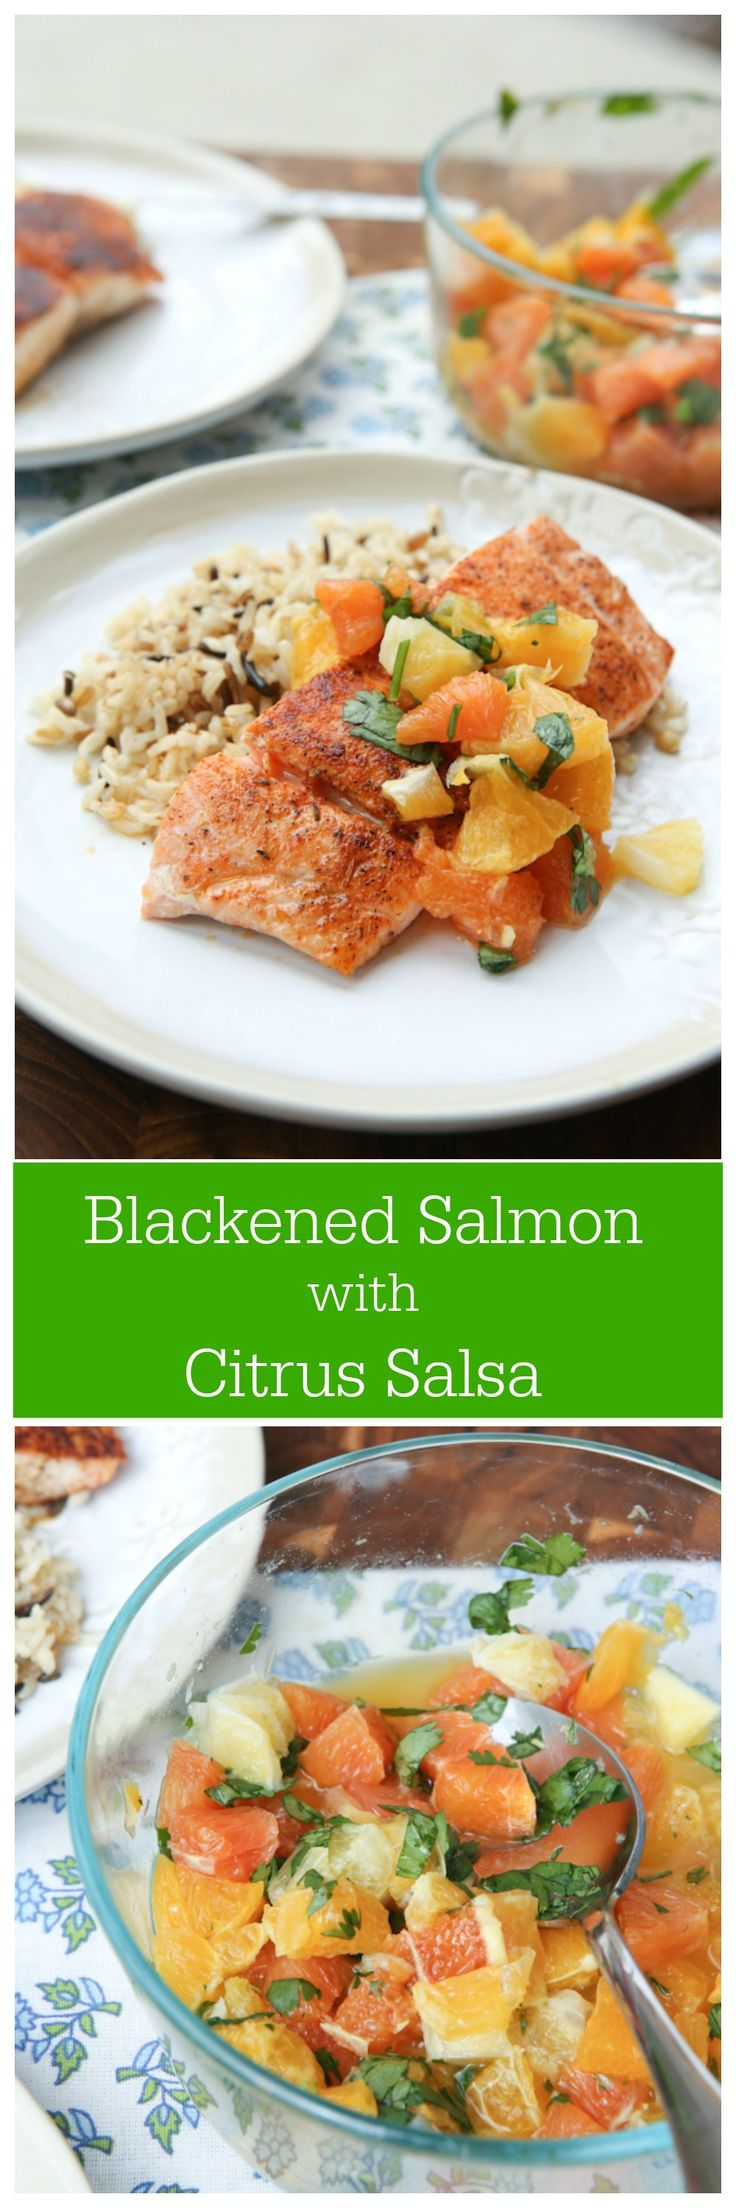 Pan Seared Blackened Salmon with Citrus Salsa - this simple recipe is healthy and screams spring!